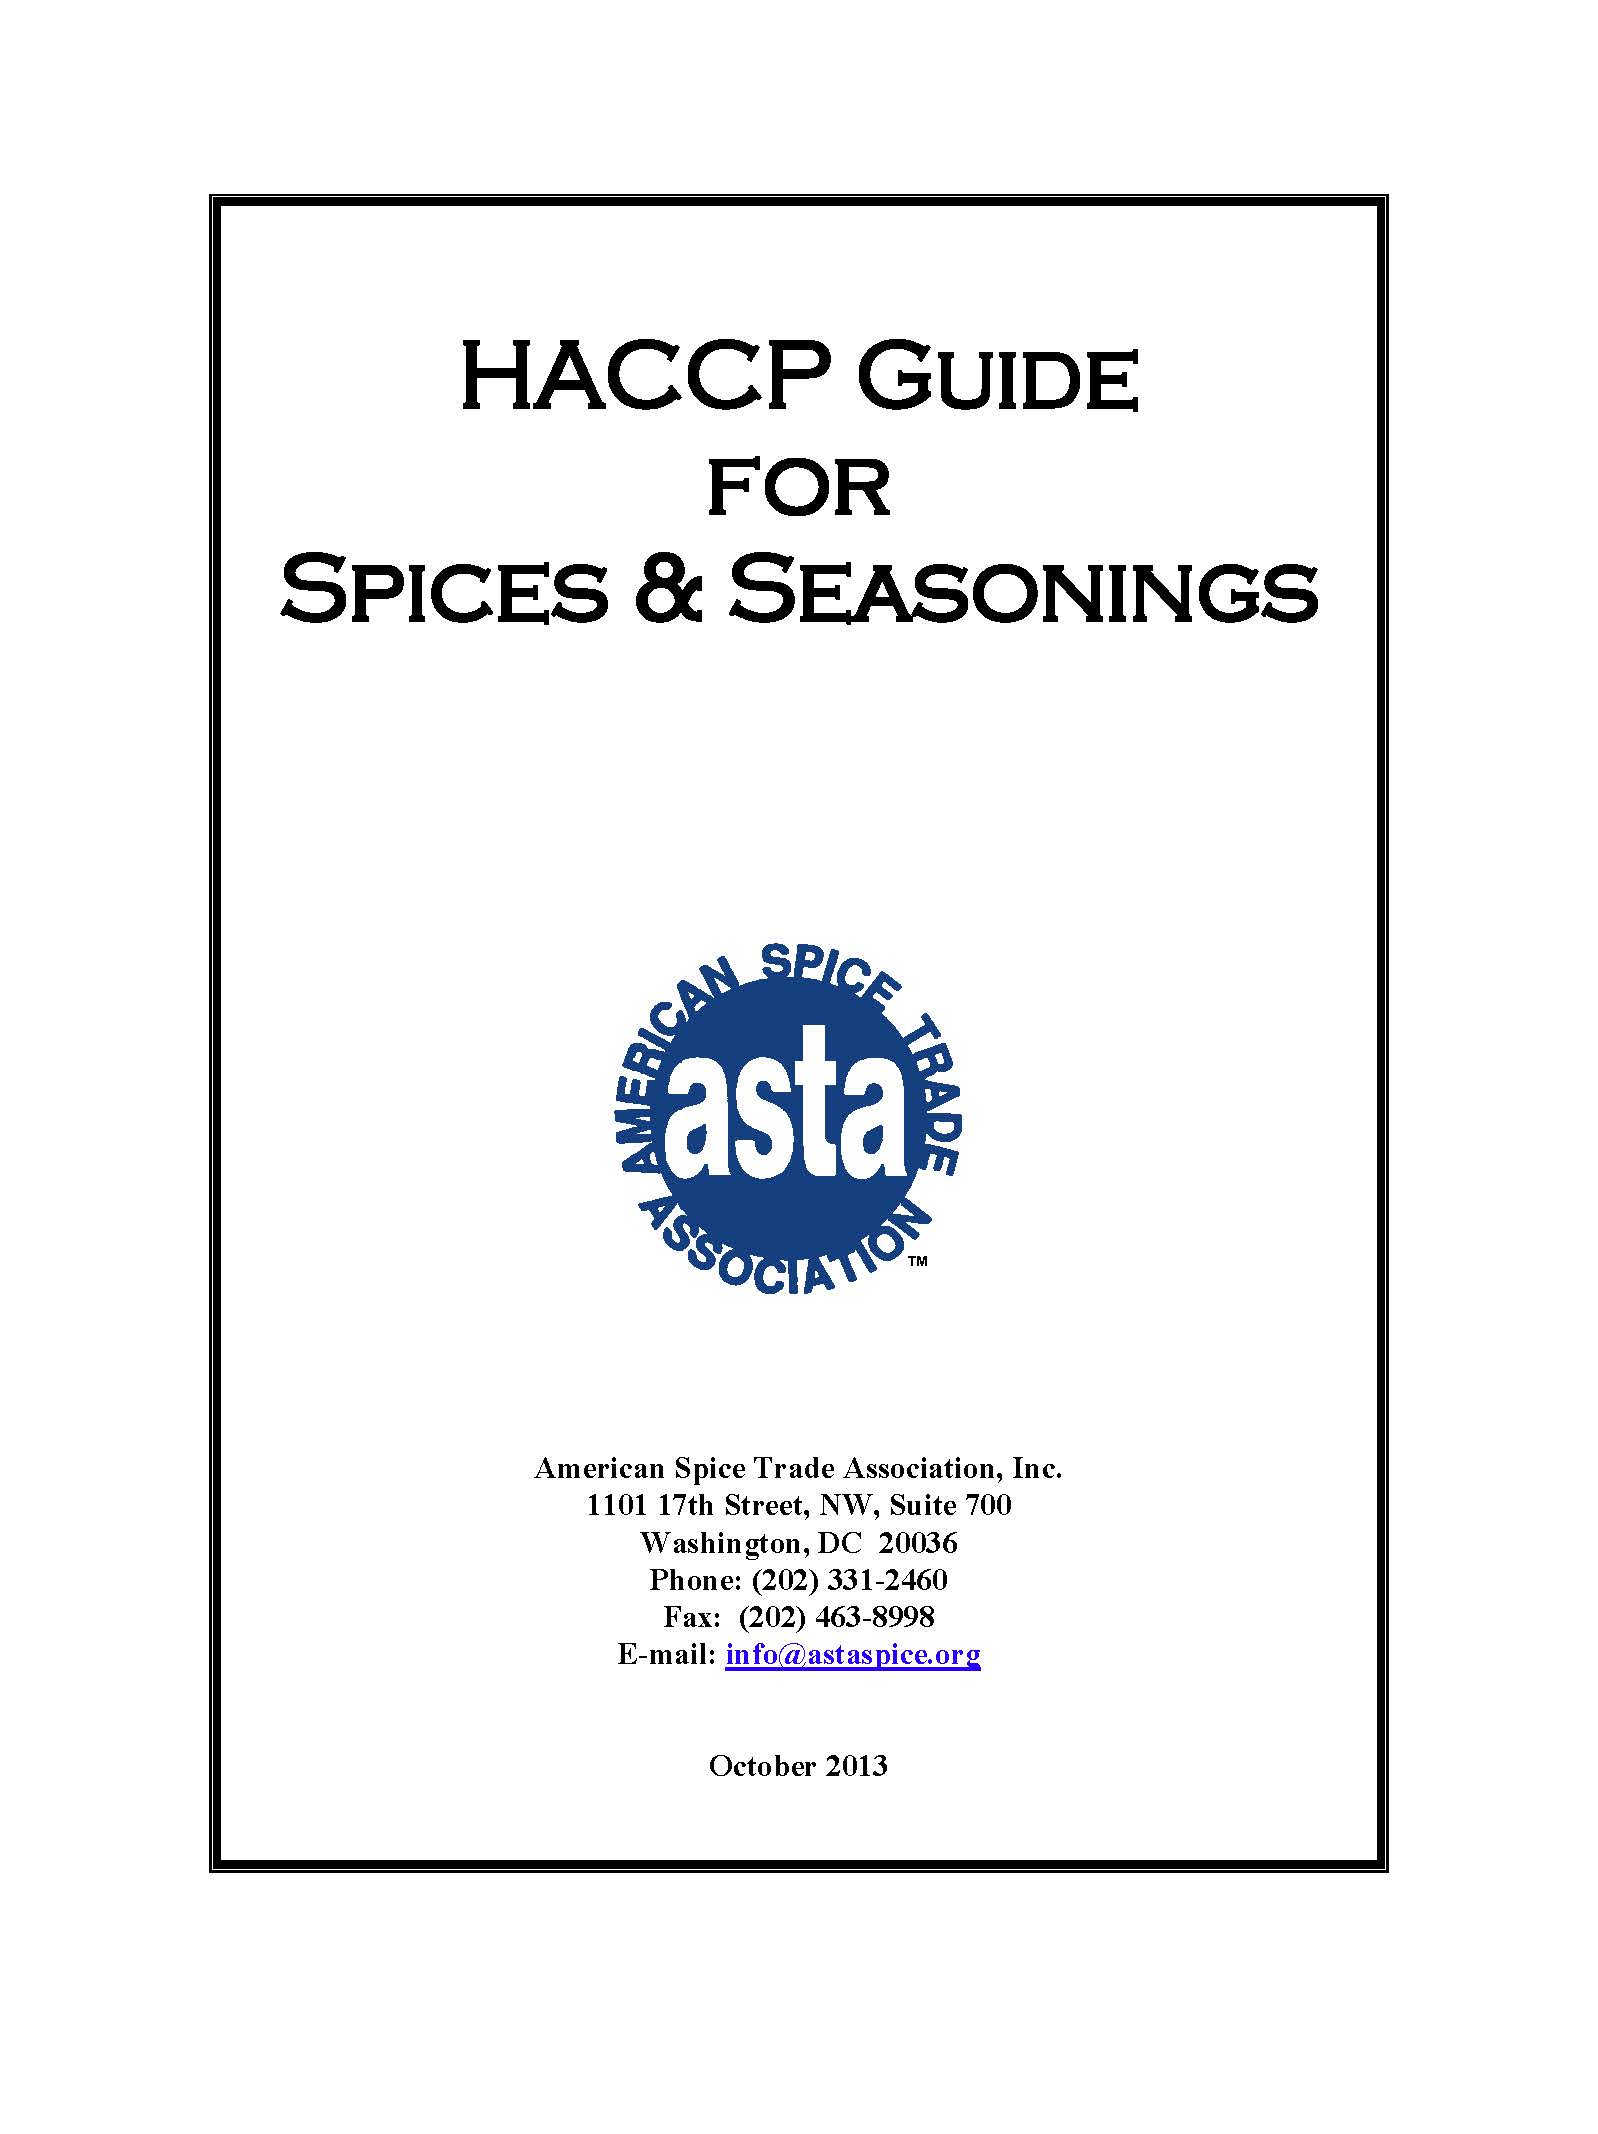 Haccp guide to spices and seasonings asta the voice of - Haccp definition cuisine ...